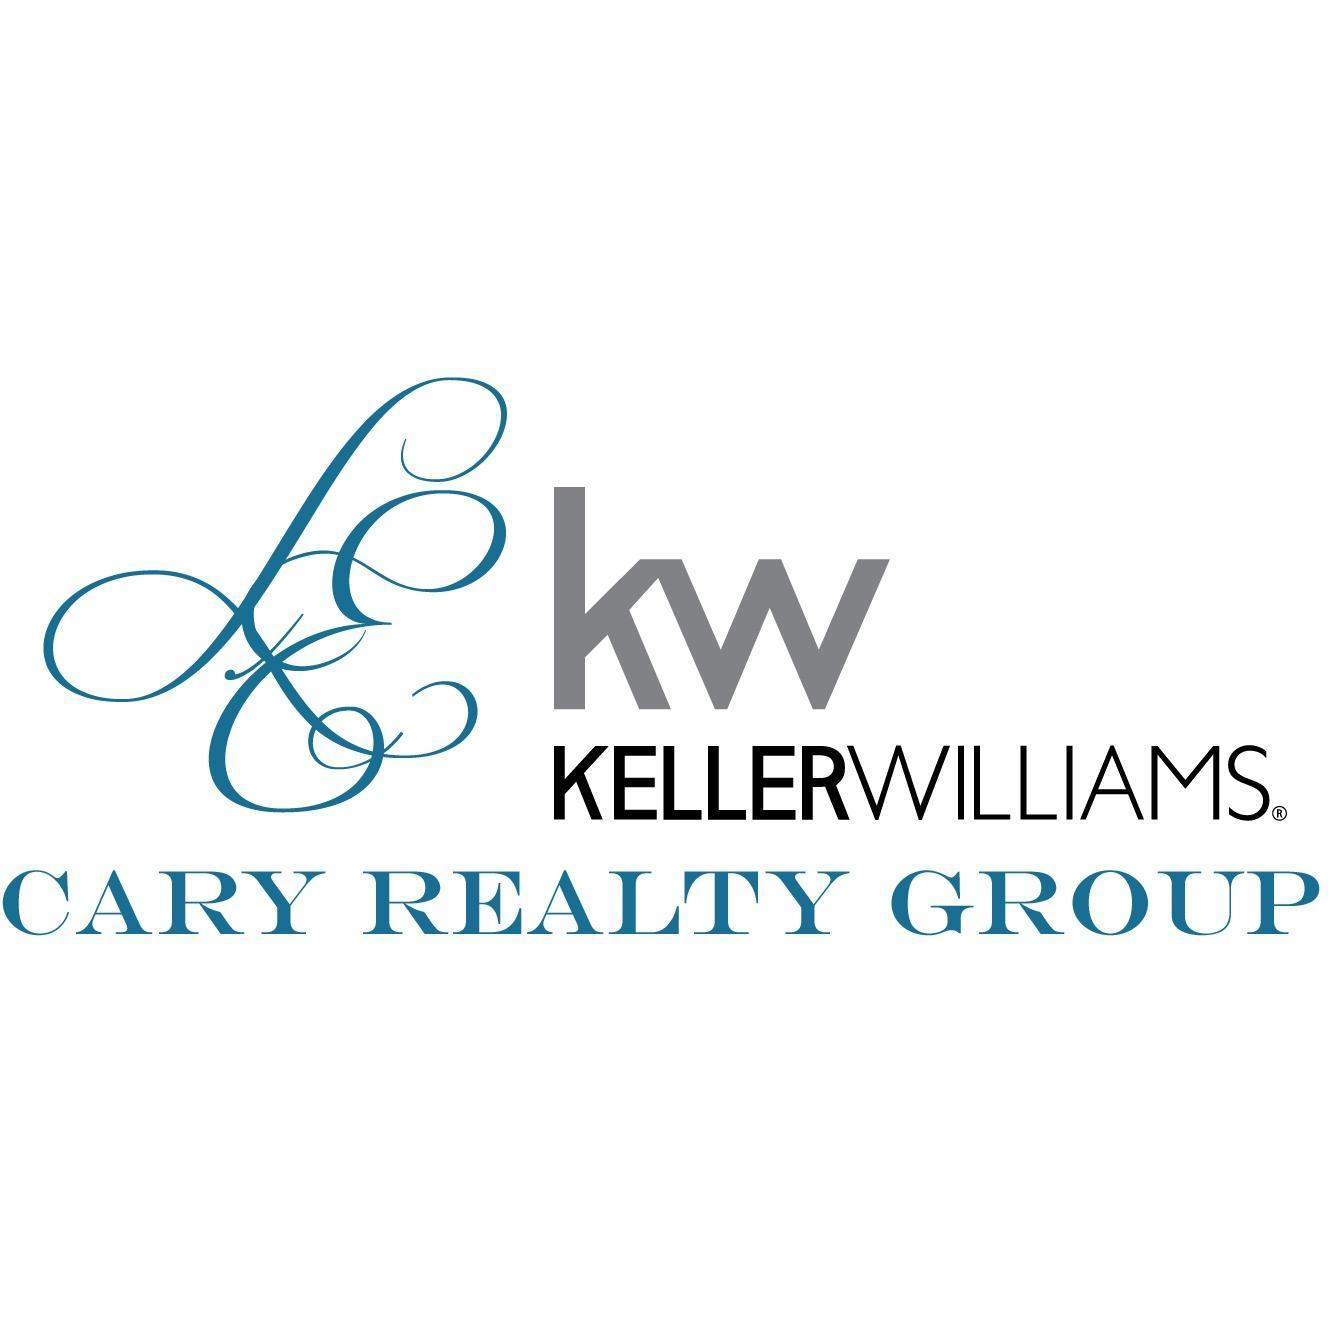 Cary Realty Group image 0